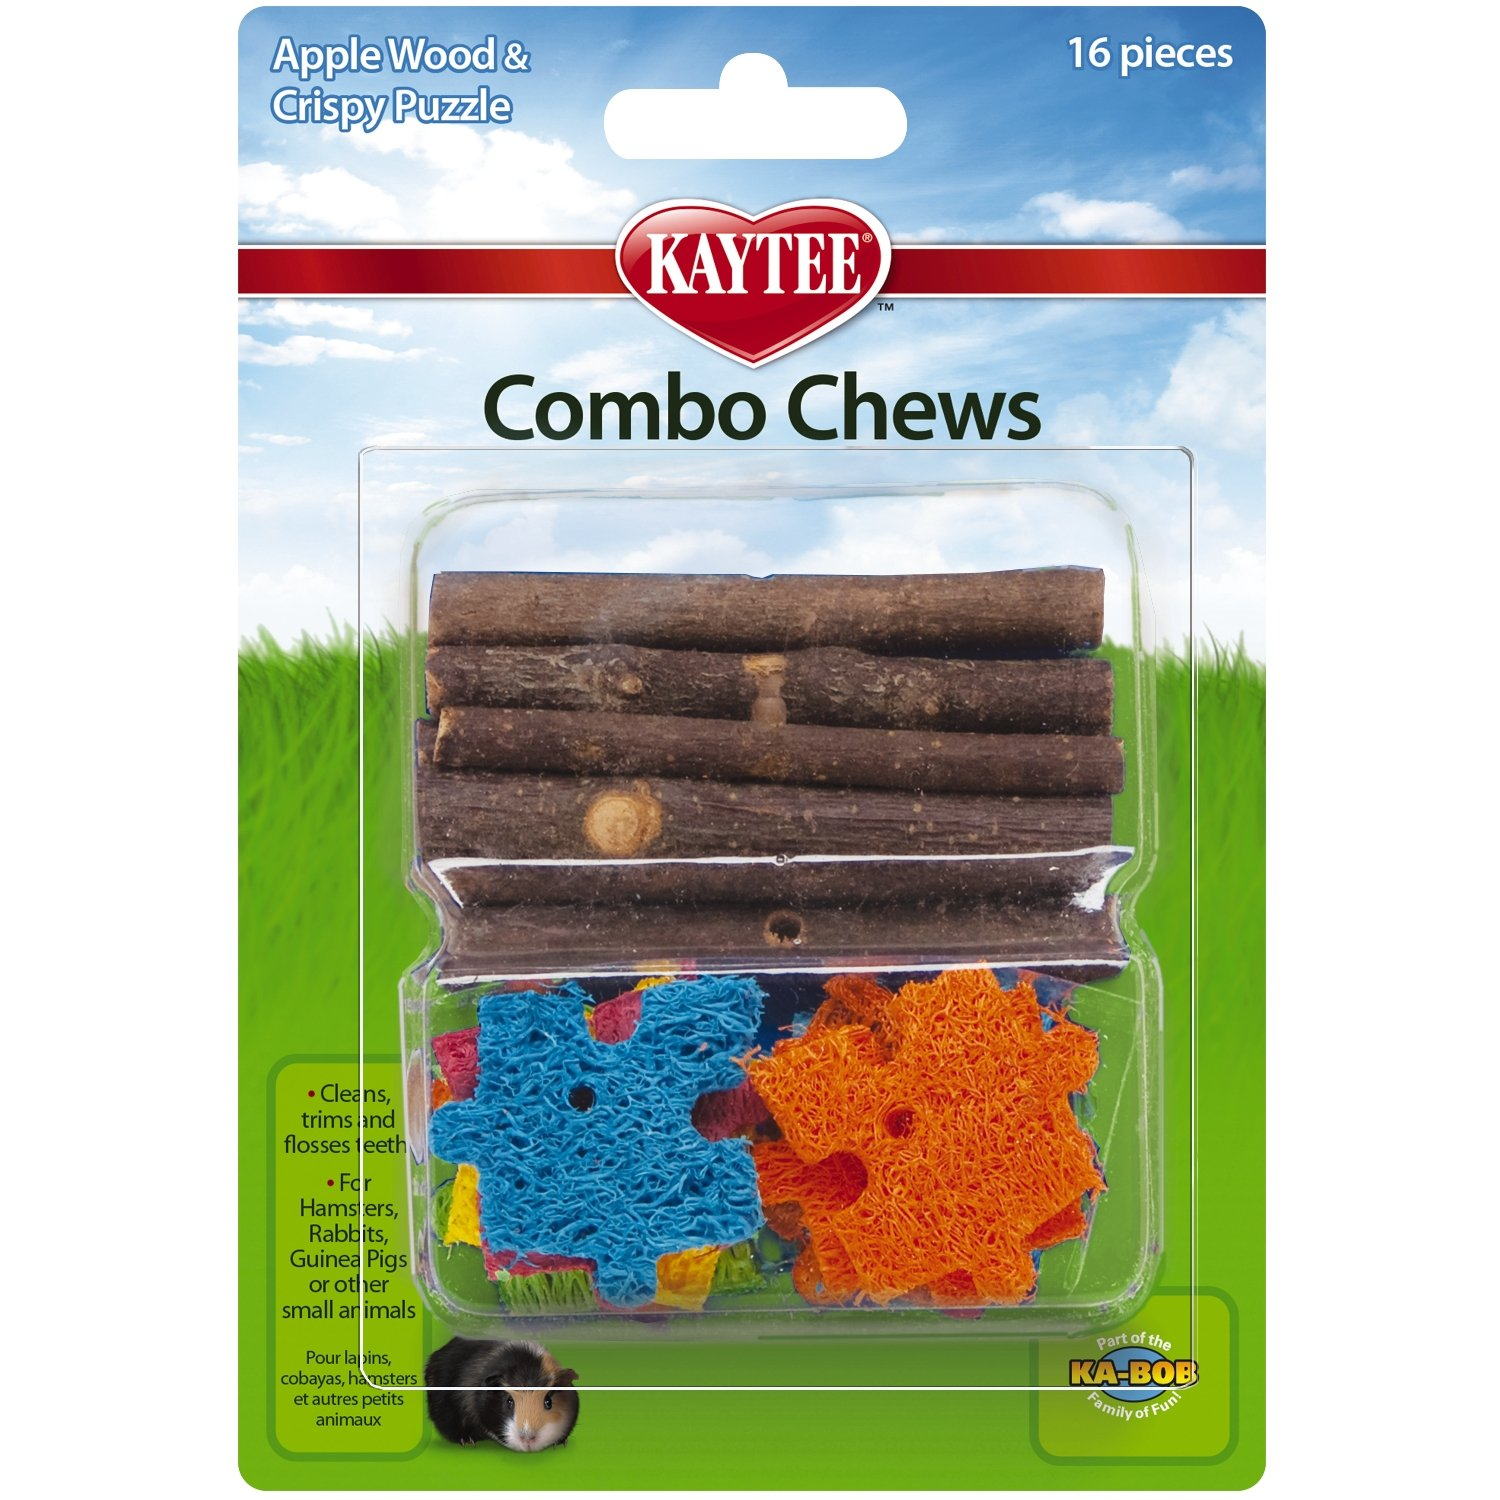 Kaytee Combo Chews, Apple Wood and Crispy Puzzle